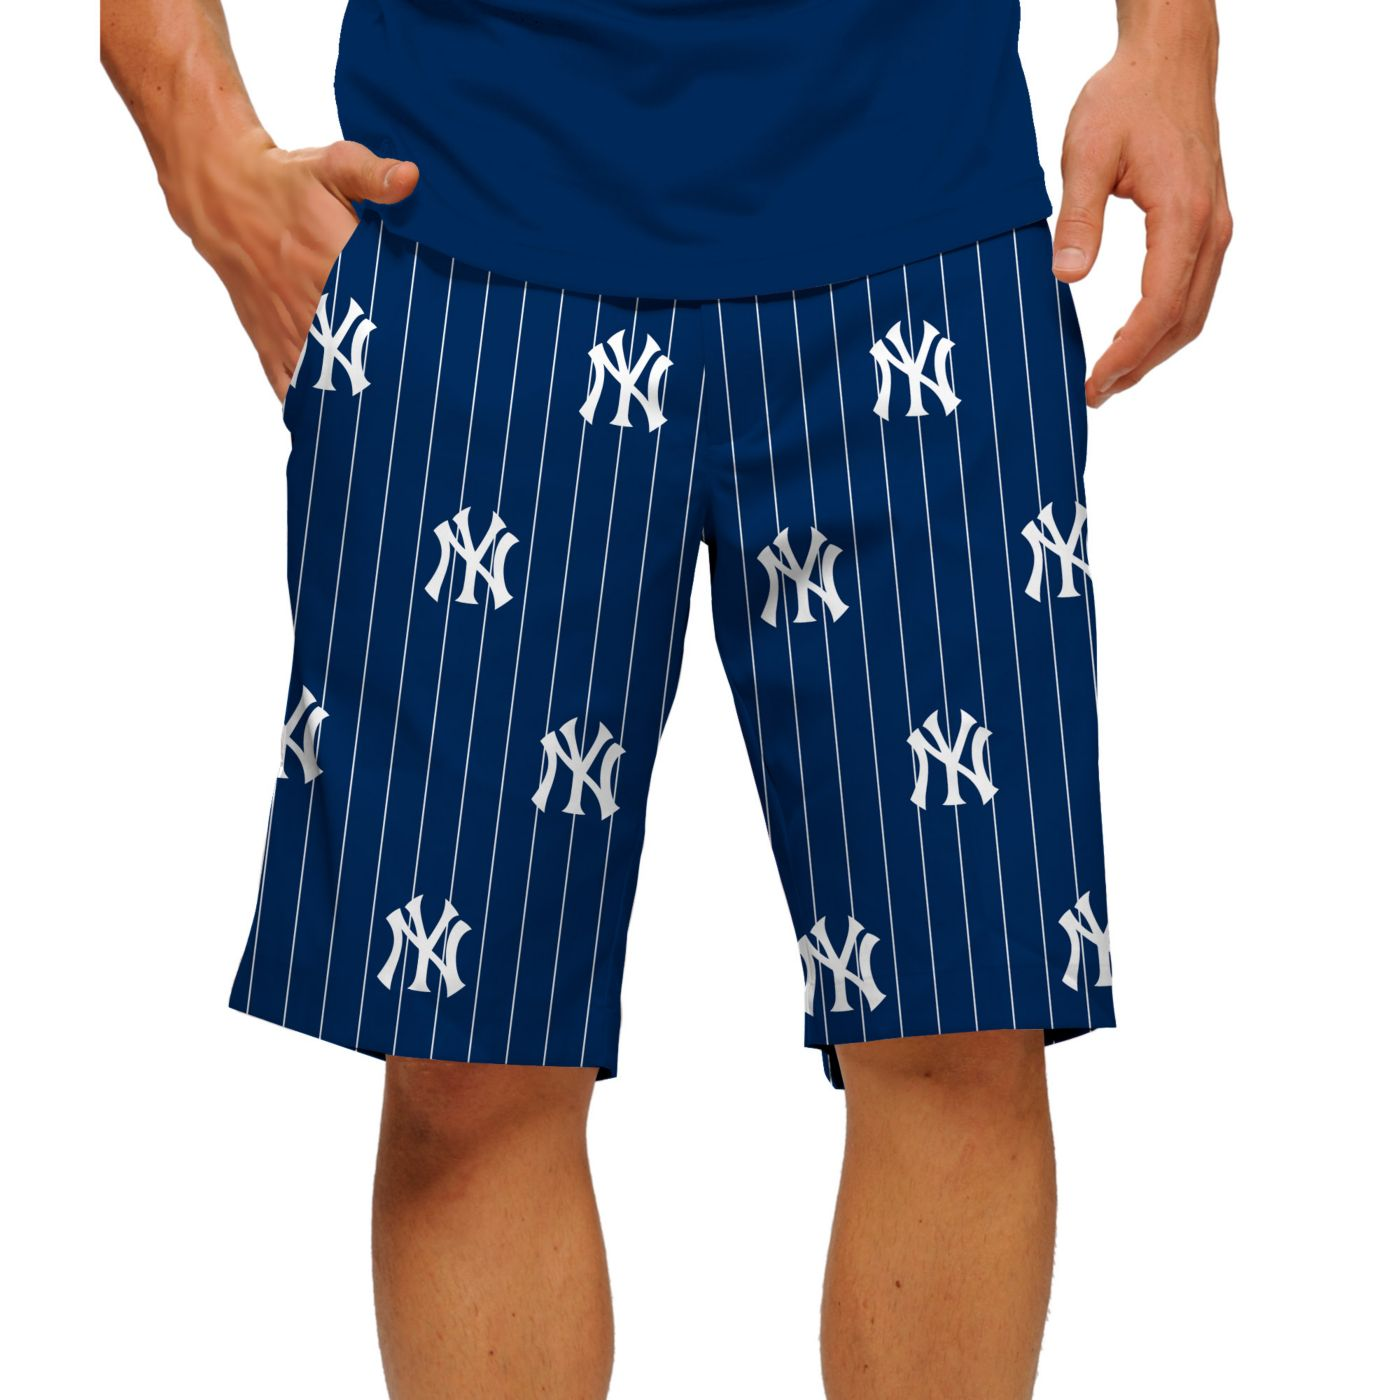 Loudmouth Men's New York Yankees Golf Shorts